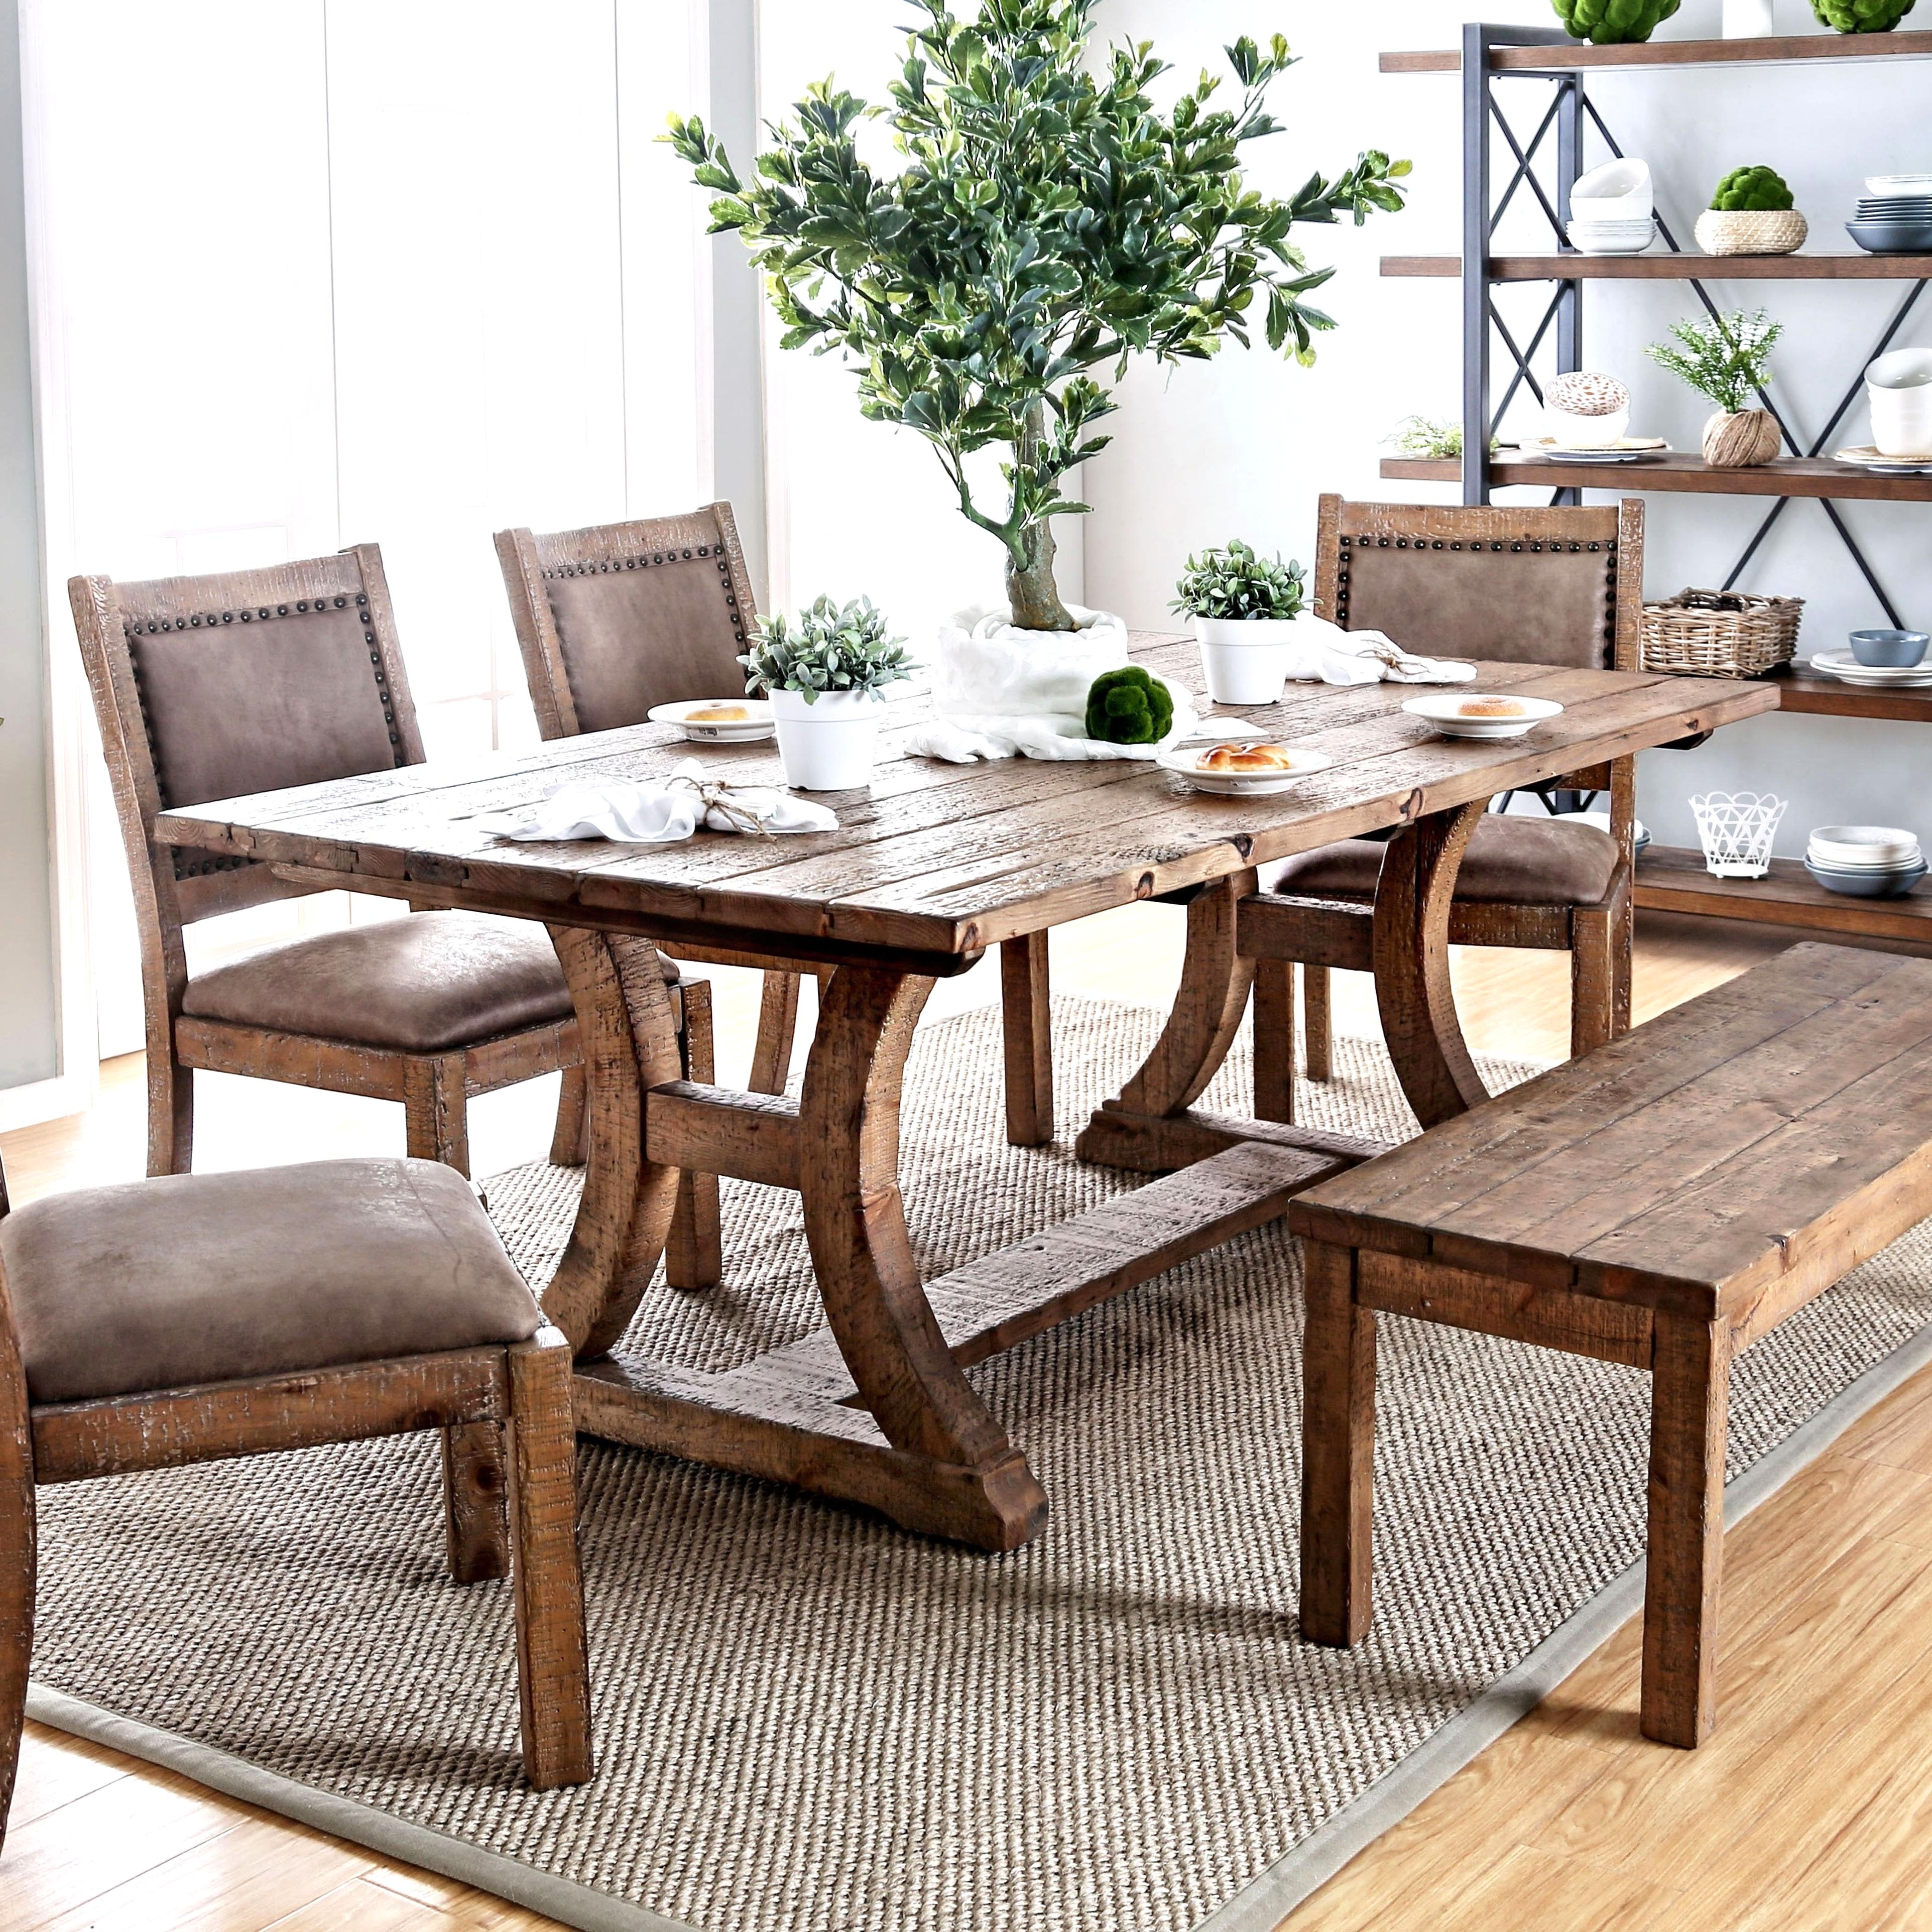 Awe Inspiring Rustic Dining Table For Sale Only 2 Left At 70 Gmtry Best Dining Table And Chair Ideas Images Gmtryco